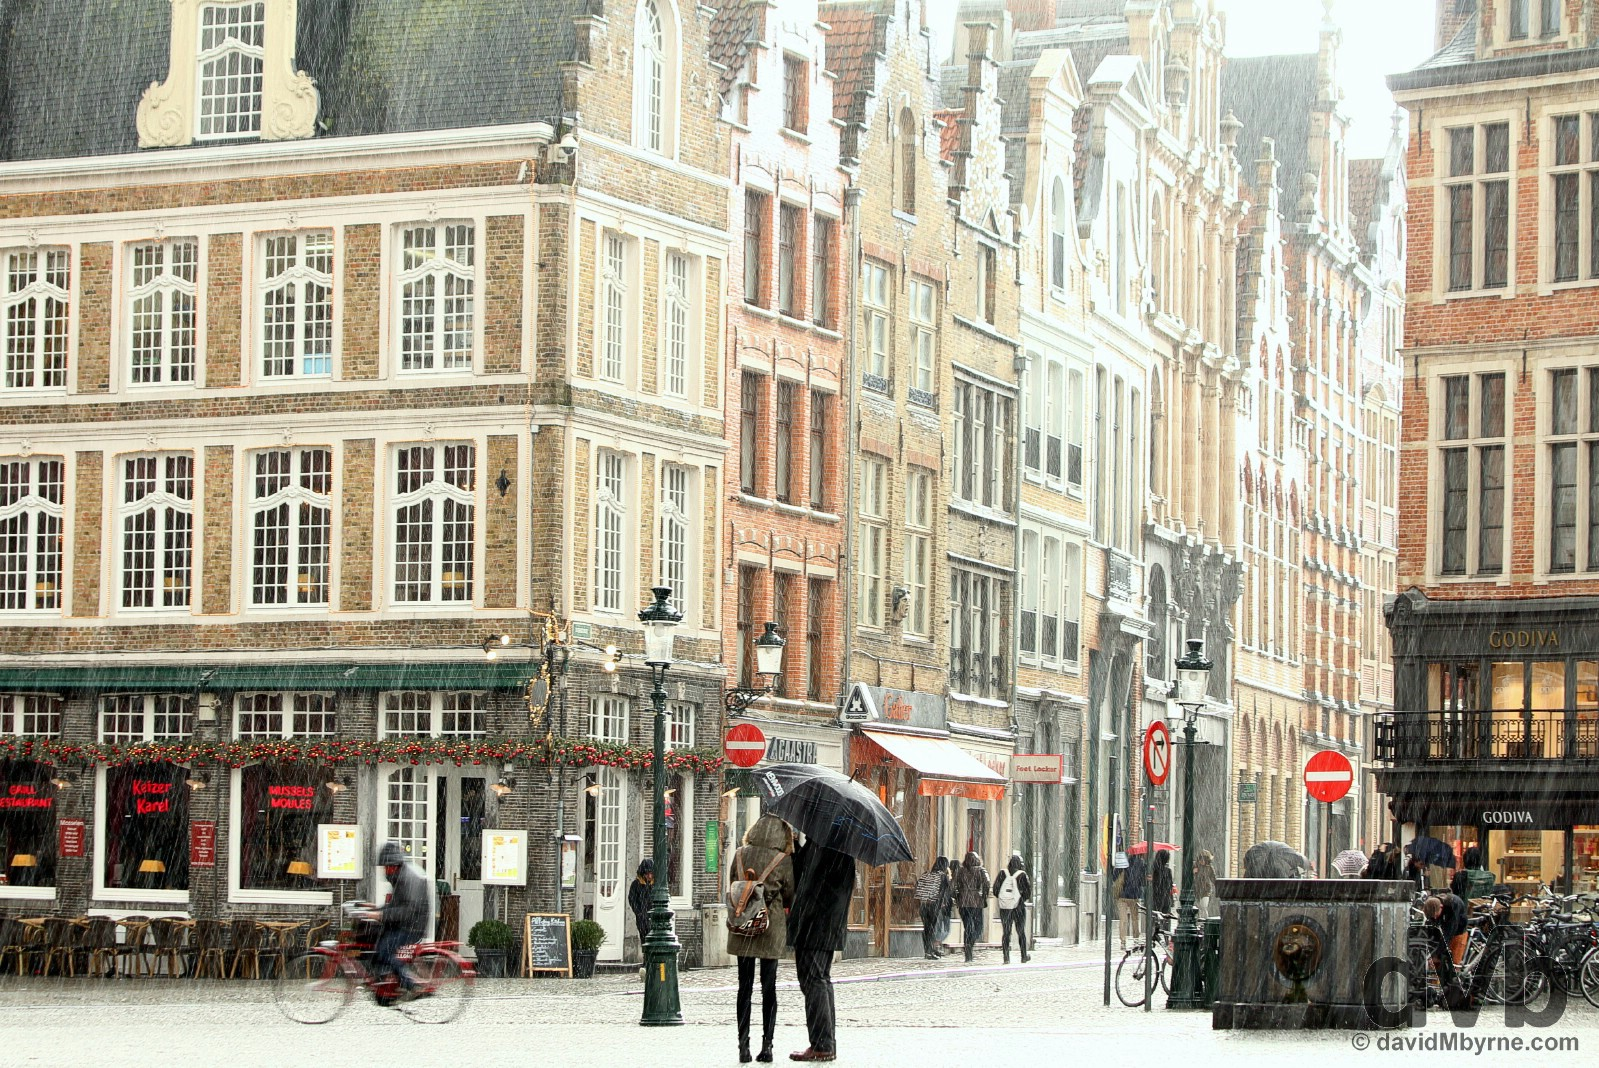 Afternoon hail showers in Market, central Bruges, western Flanders, Belgium. January 15, 2016.